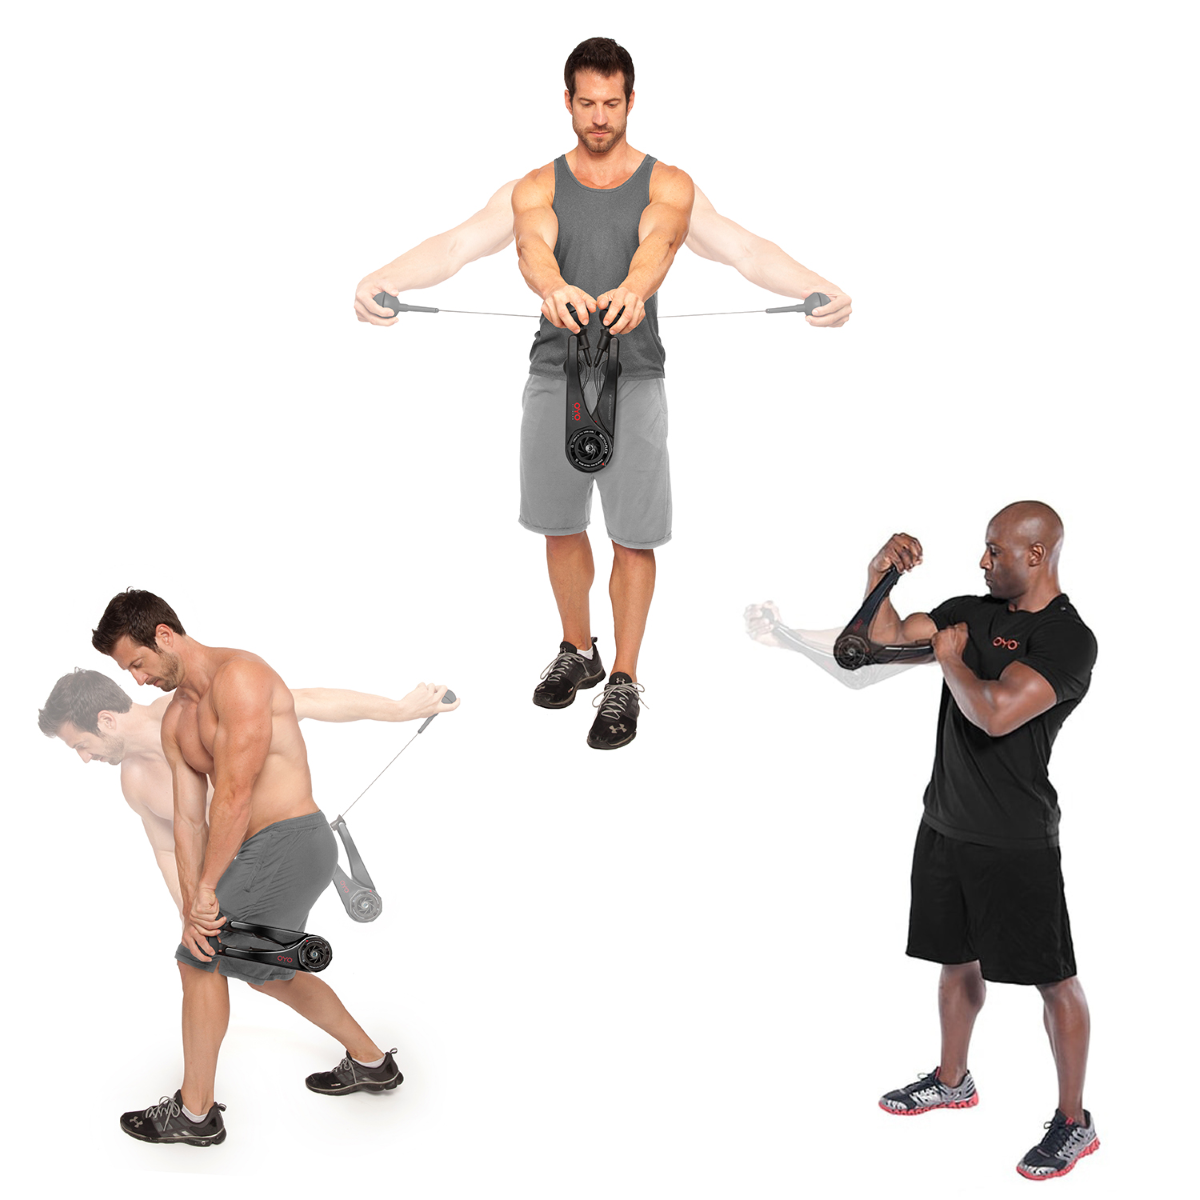 TOTAL BODY WORKOUT: ANYWHERE, ANYTIME